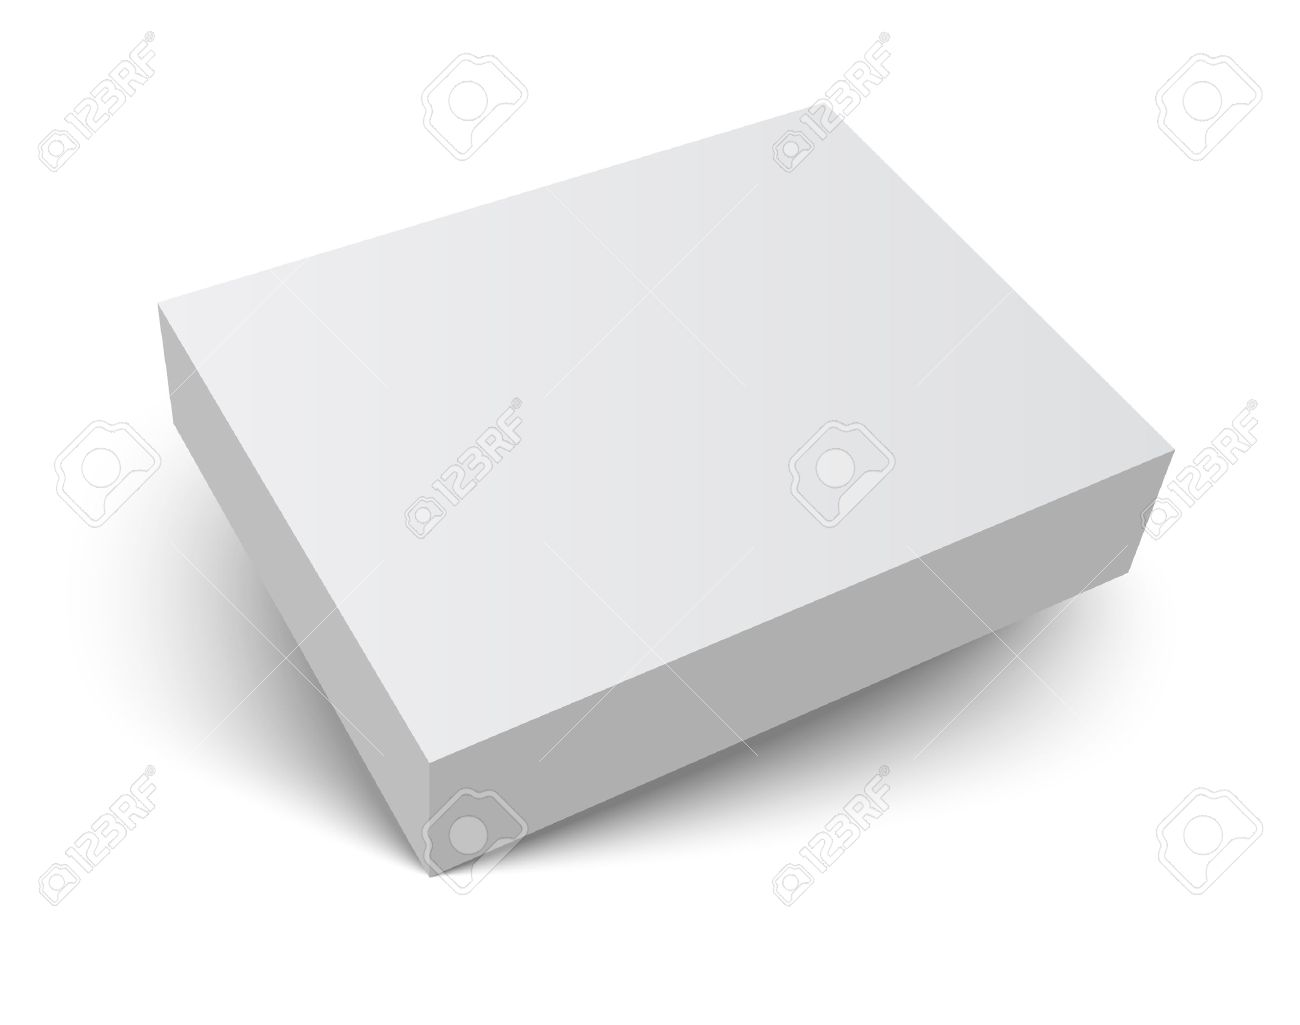 Blank Gray Box Isolated On White Packaging Design 3d Template Royalty Free Cliparts Vectors And Stock Illustration Image 37449288